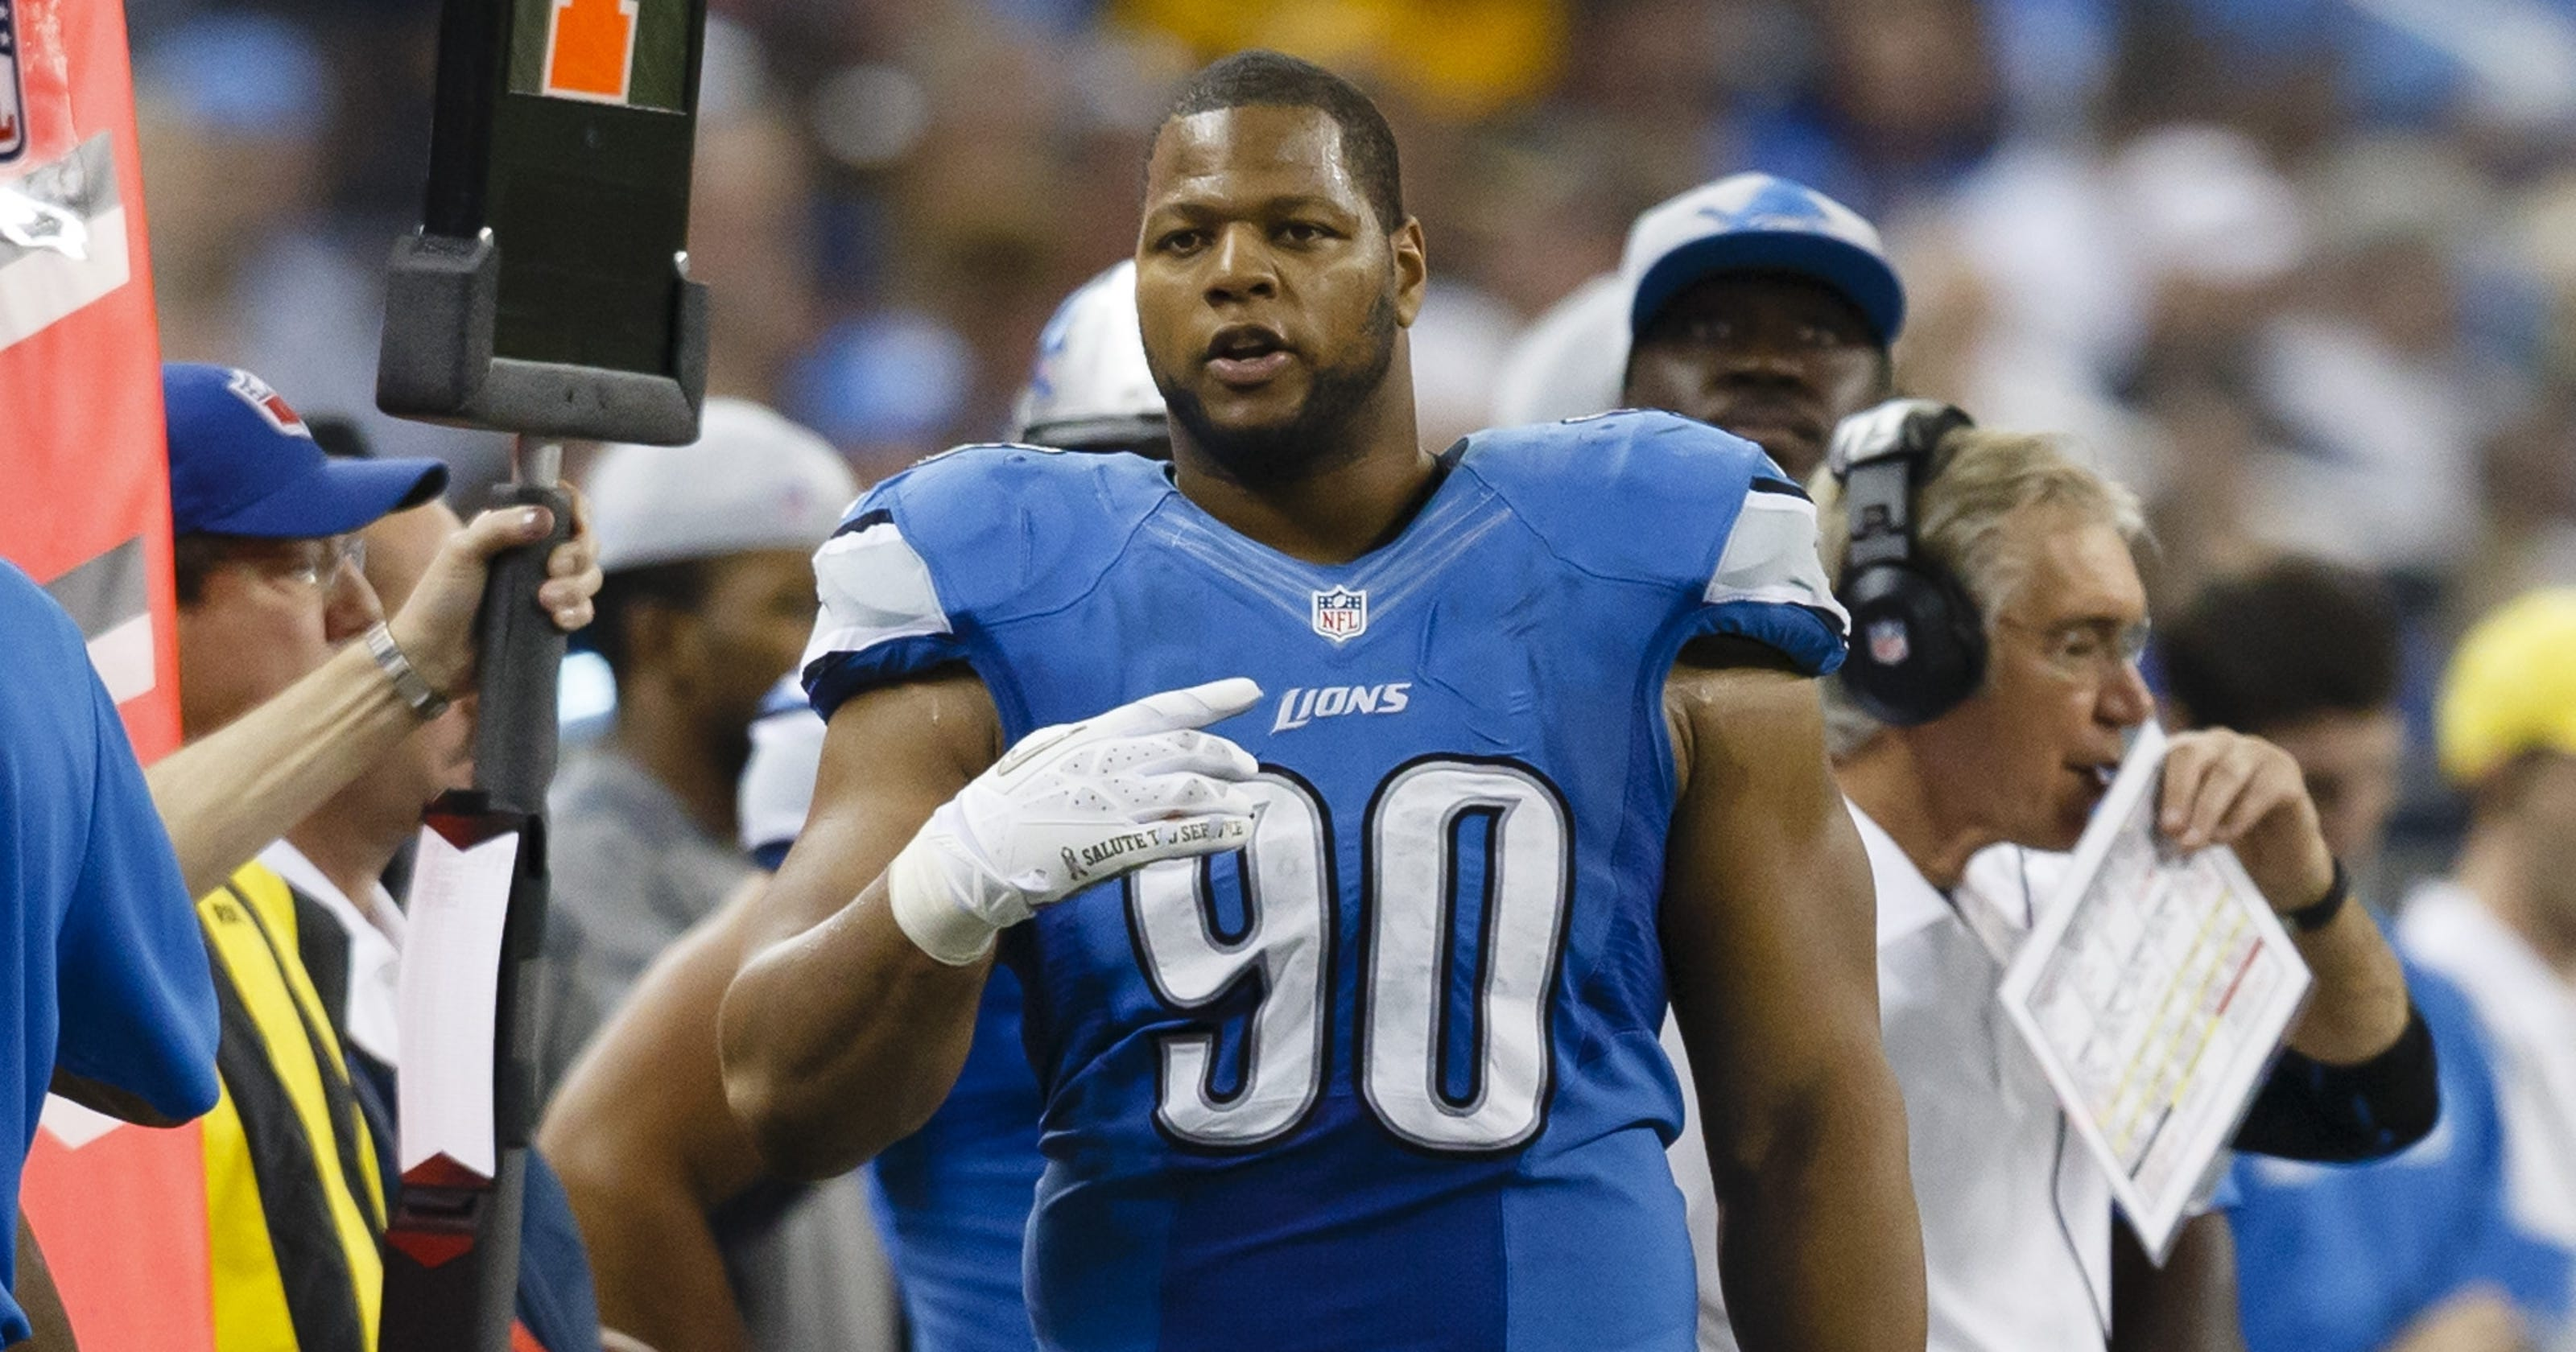 low priced 335b0 b065d Ndamukong Suh will not be suspended for hit on Matt Schaub